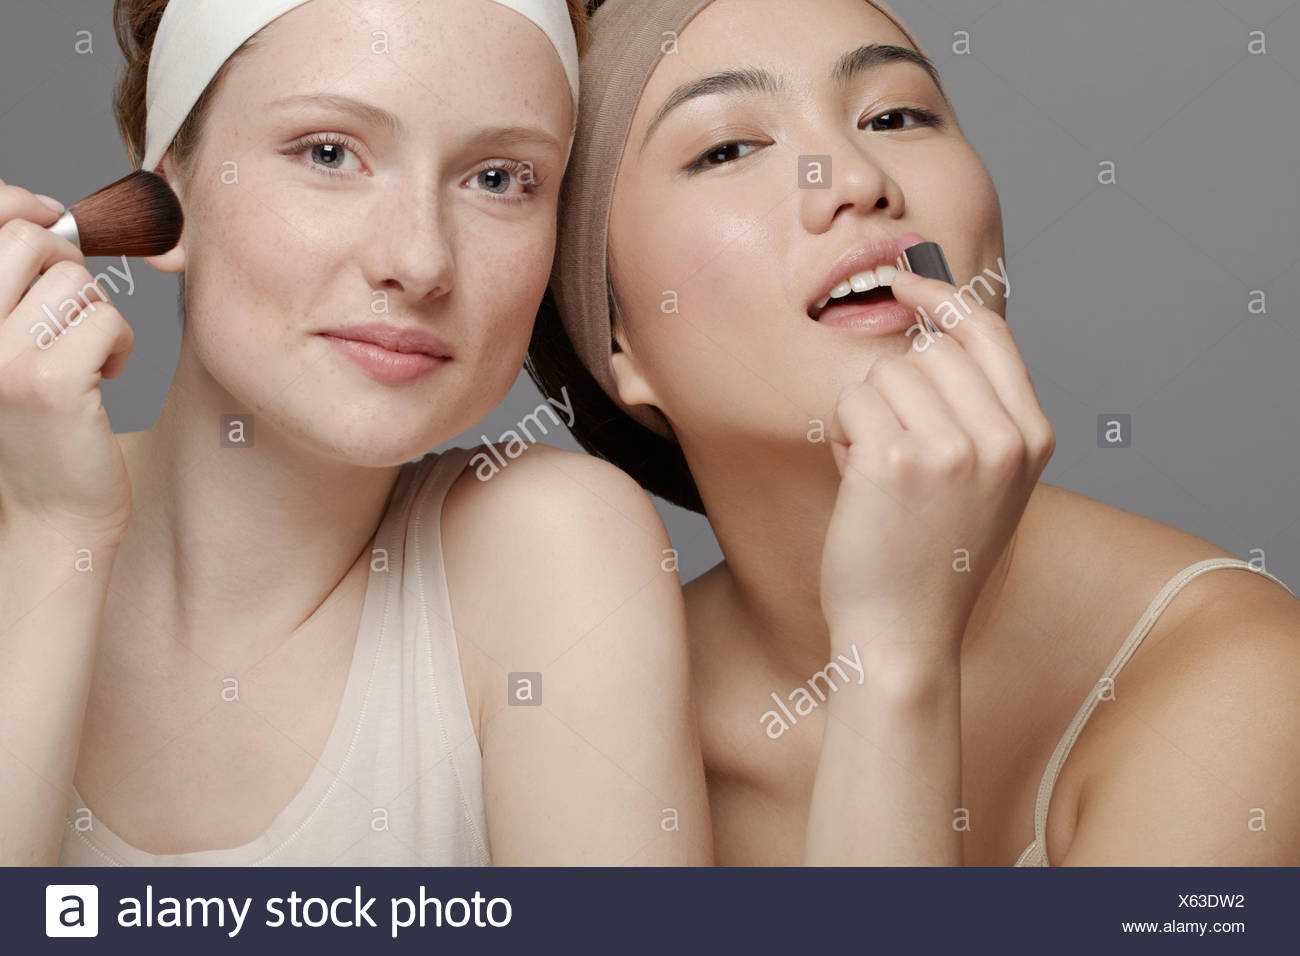 Young women putting on make up - Stock Image